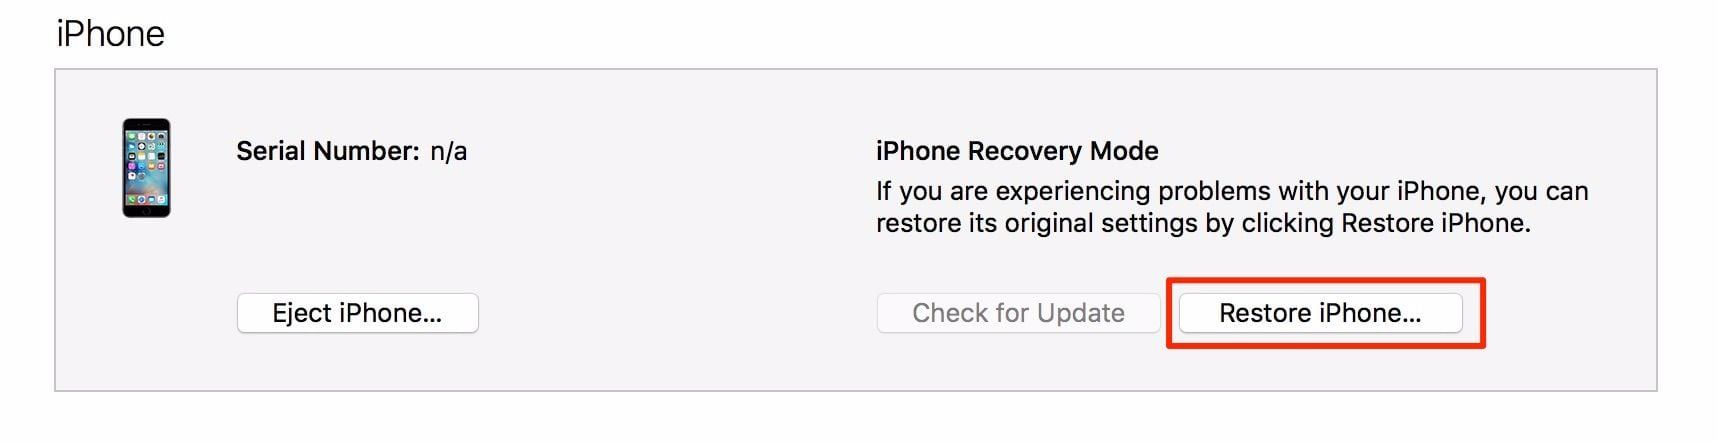 restore iphone when iphone is disabled connect to itunes error appear on screen